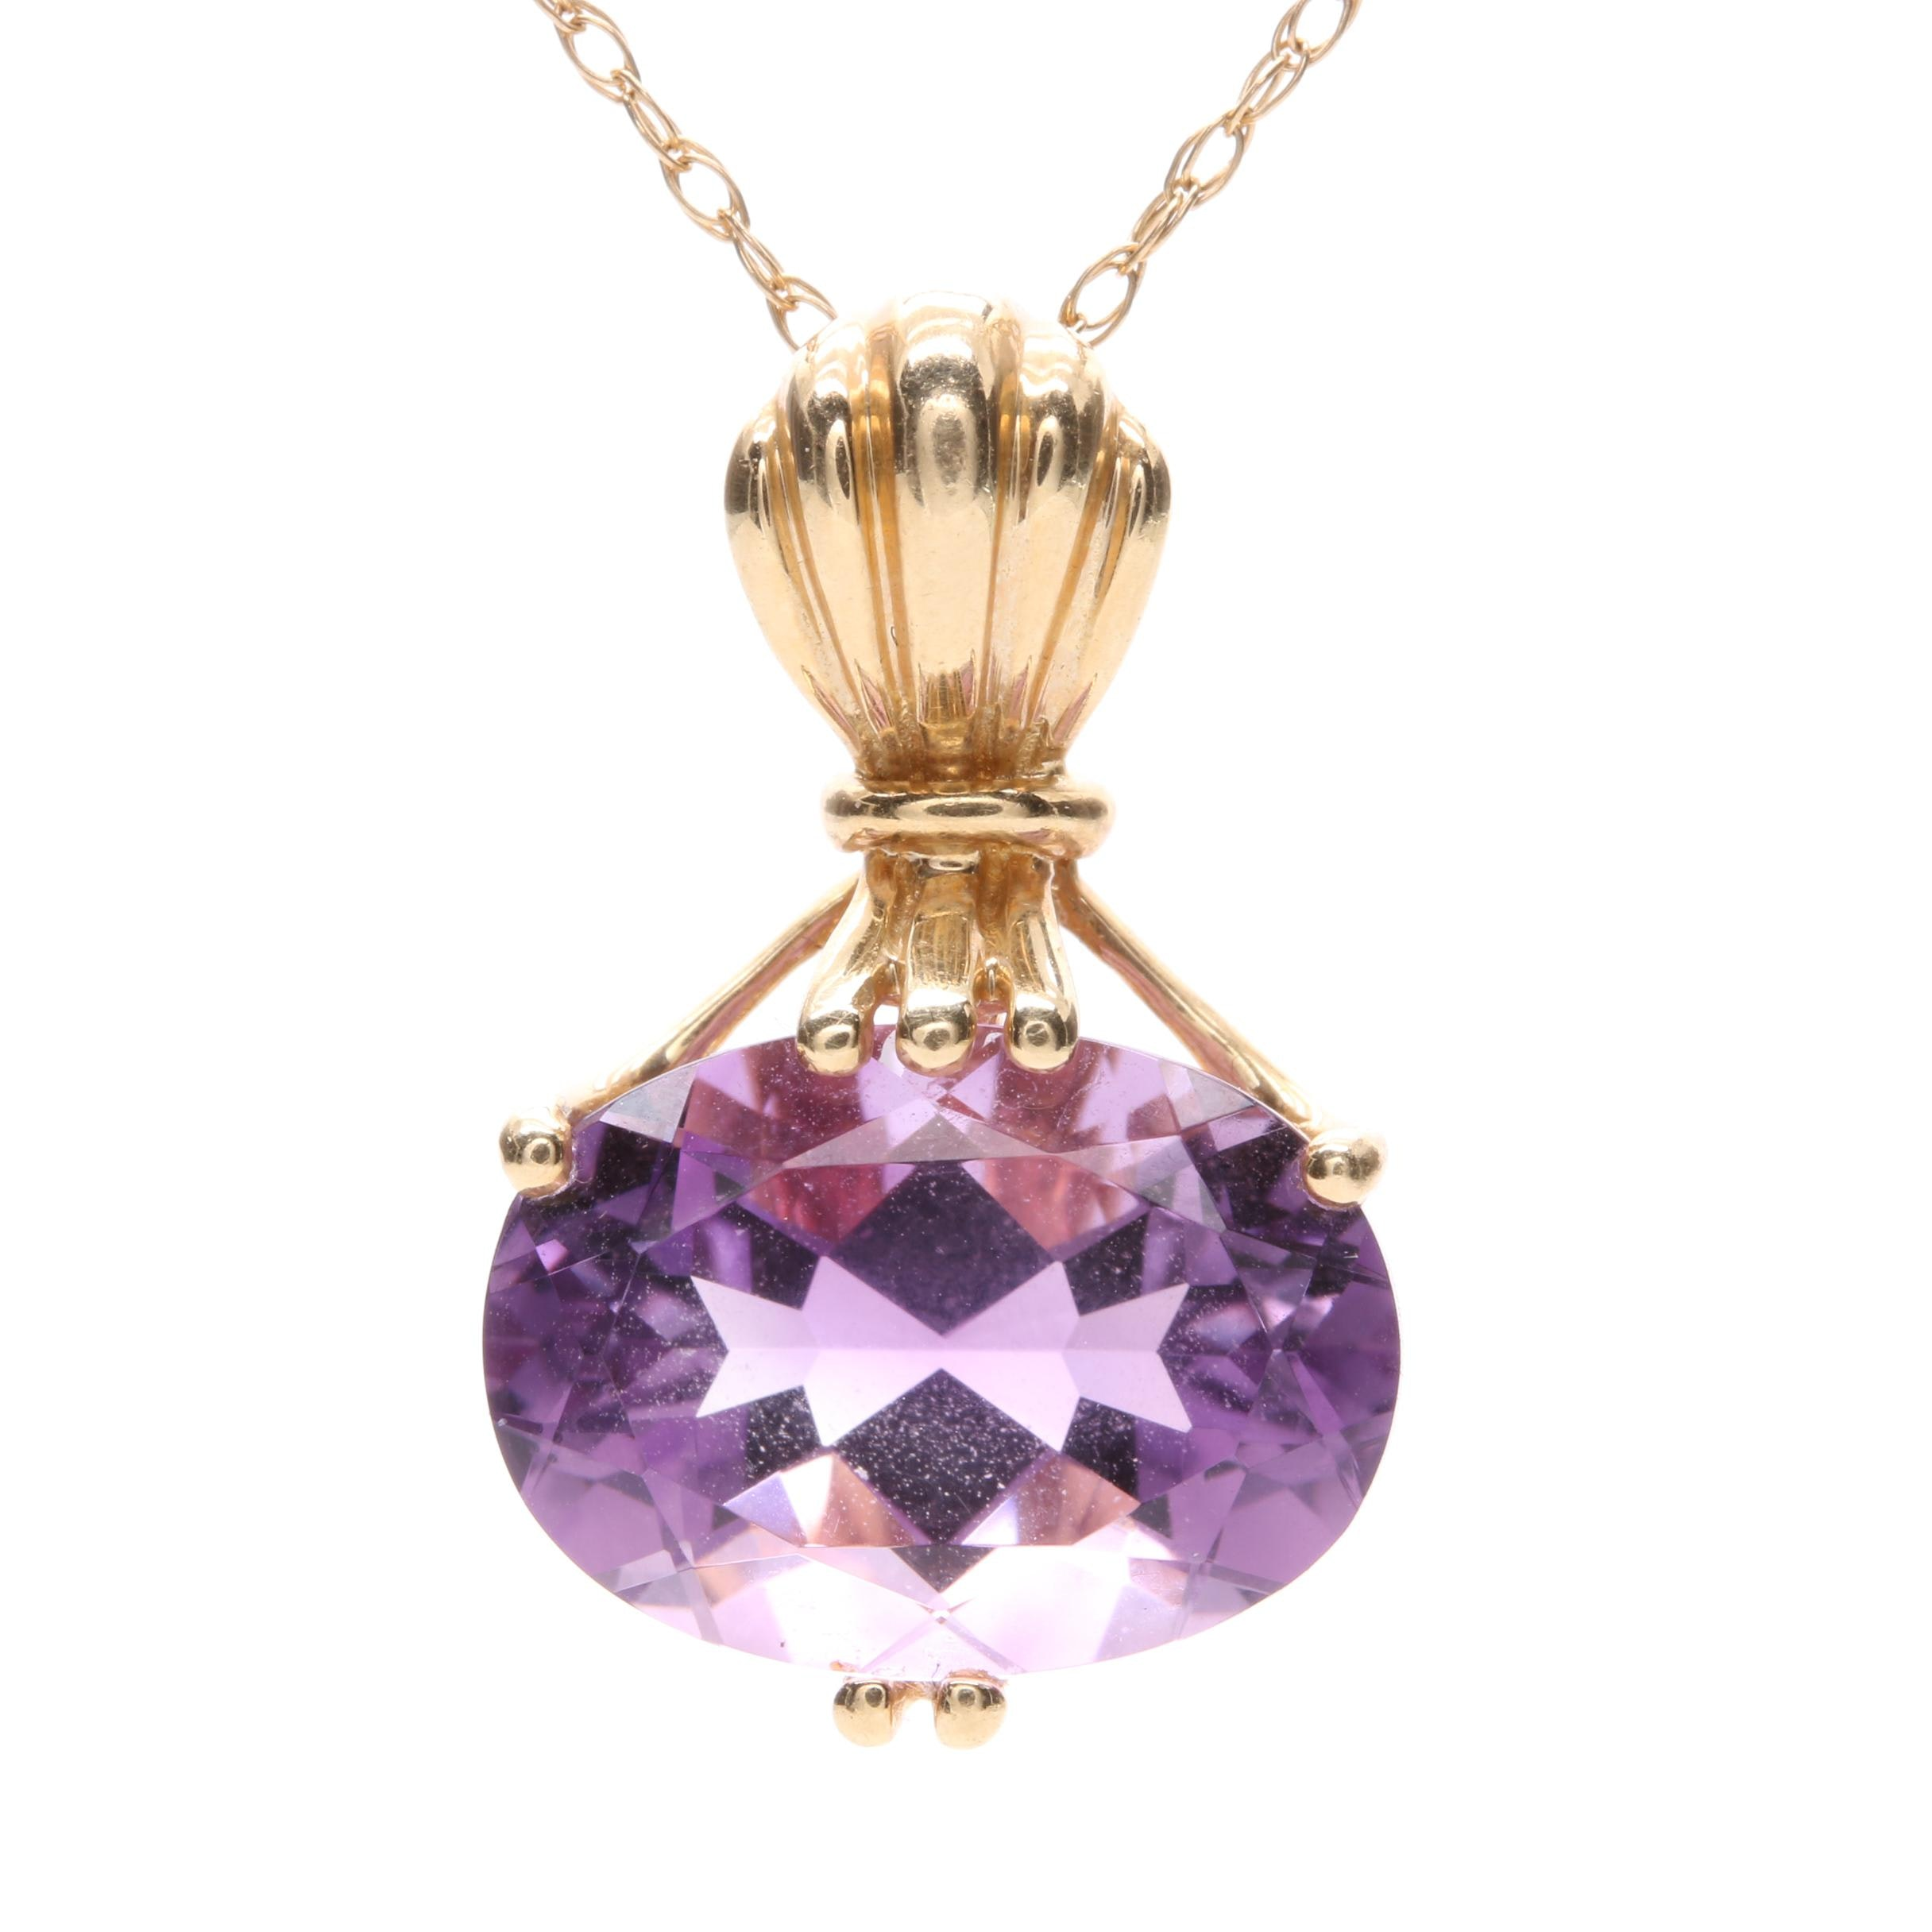 14K Yellow Gold Amethyst Pendant Necklace